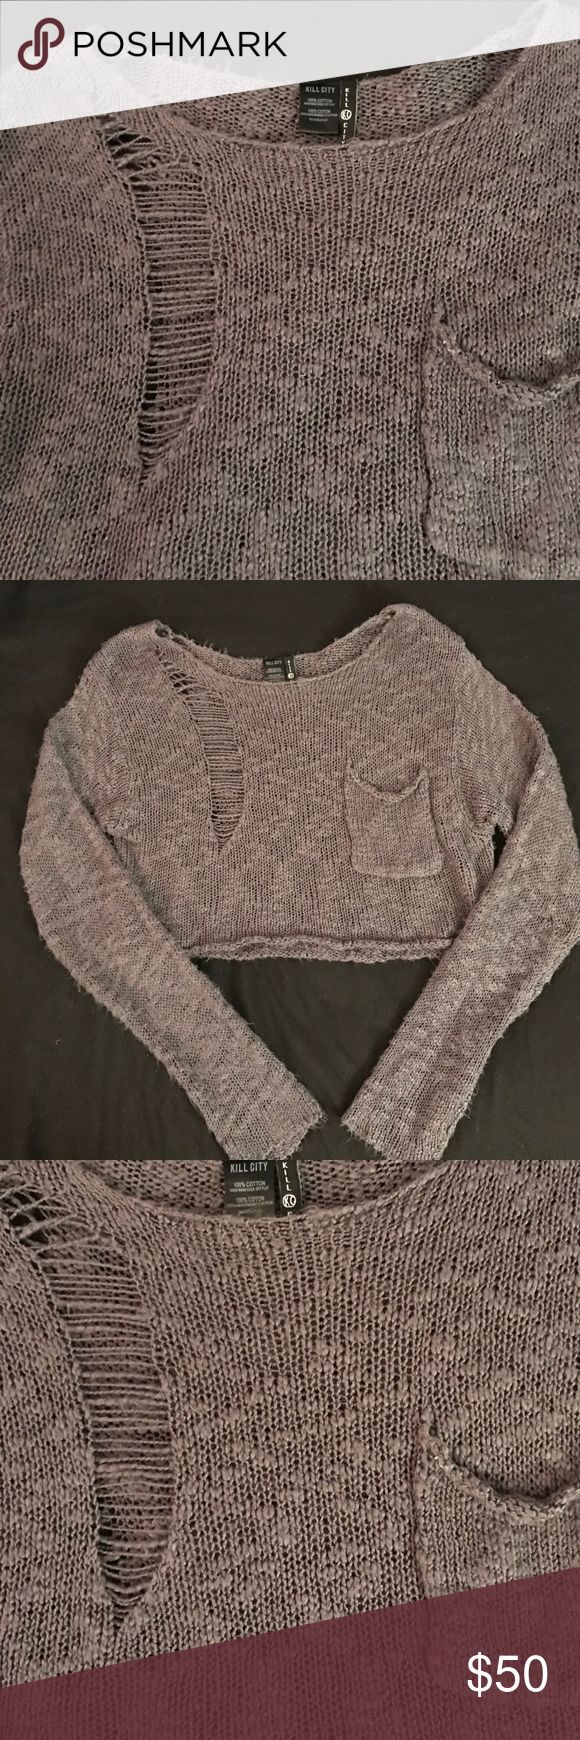 Kill City Cropped Distressed Sweater Super soft, breathable cropped sweater by Kill City. Deliberately pulled seams on front and back. Looks best slouchy! Kill City Tops Crop Tops